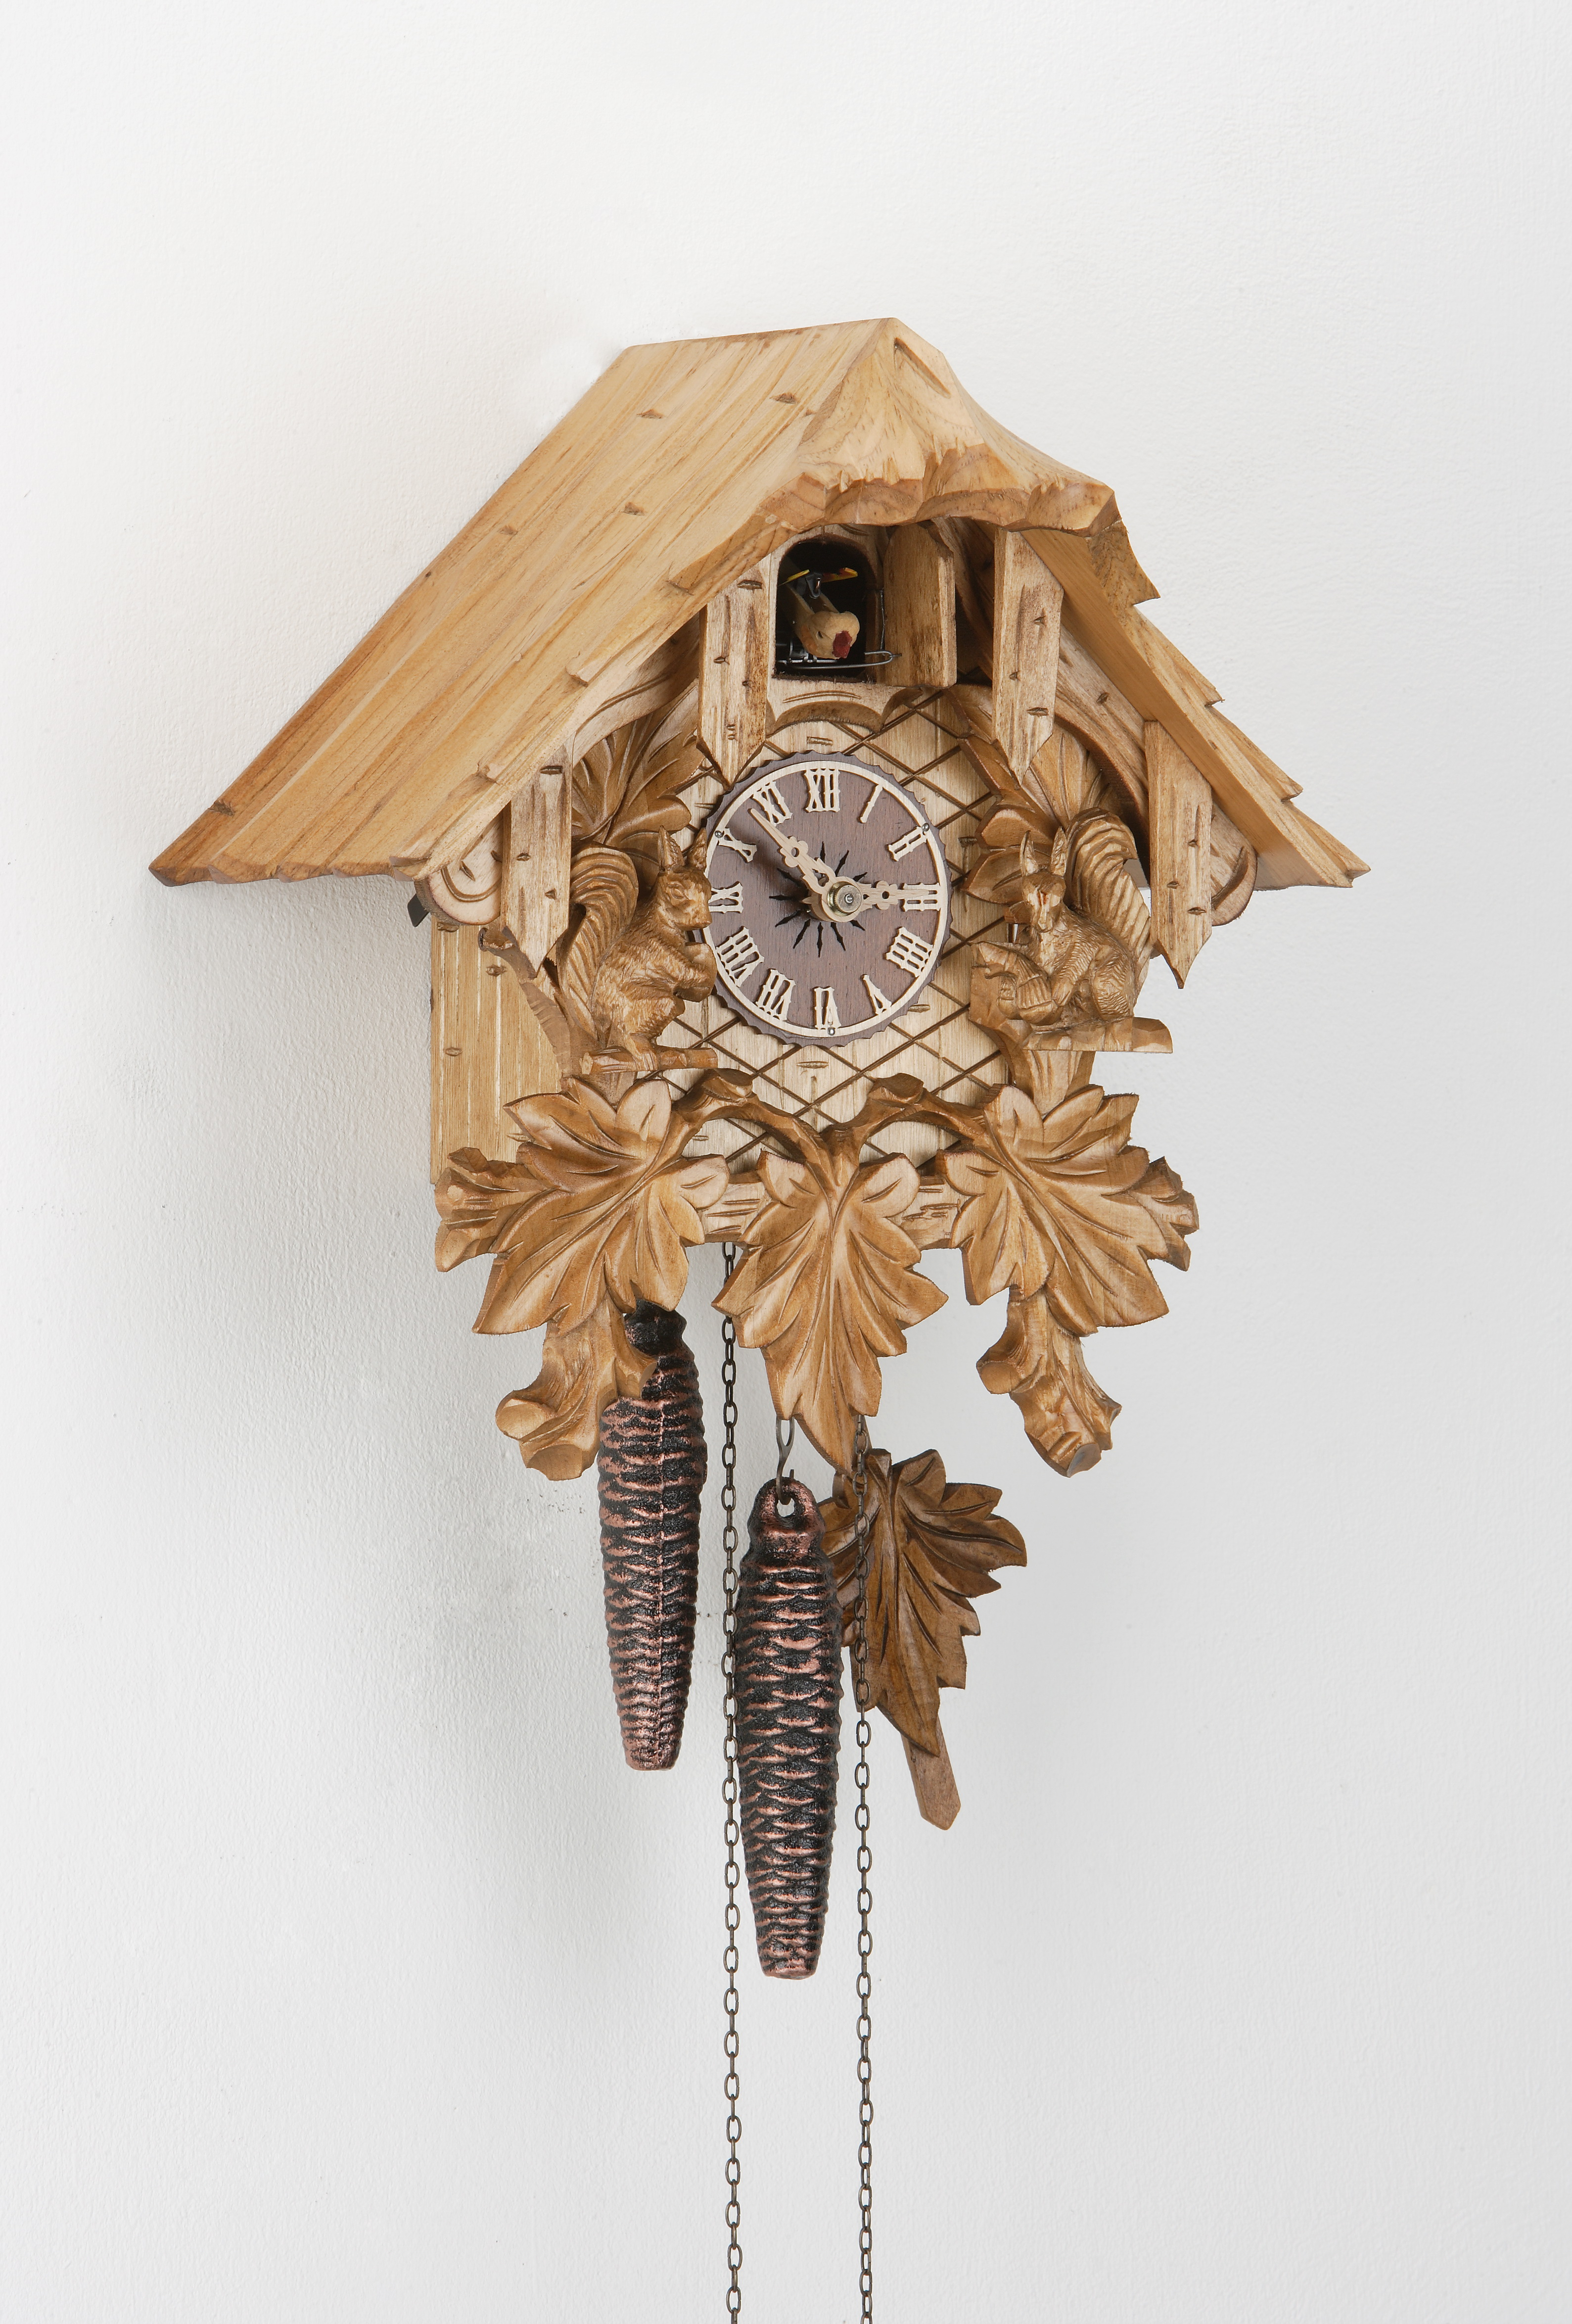 1 Day Cuckoo Clock Black Forest House with squirrel family